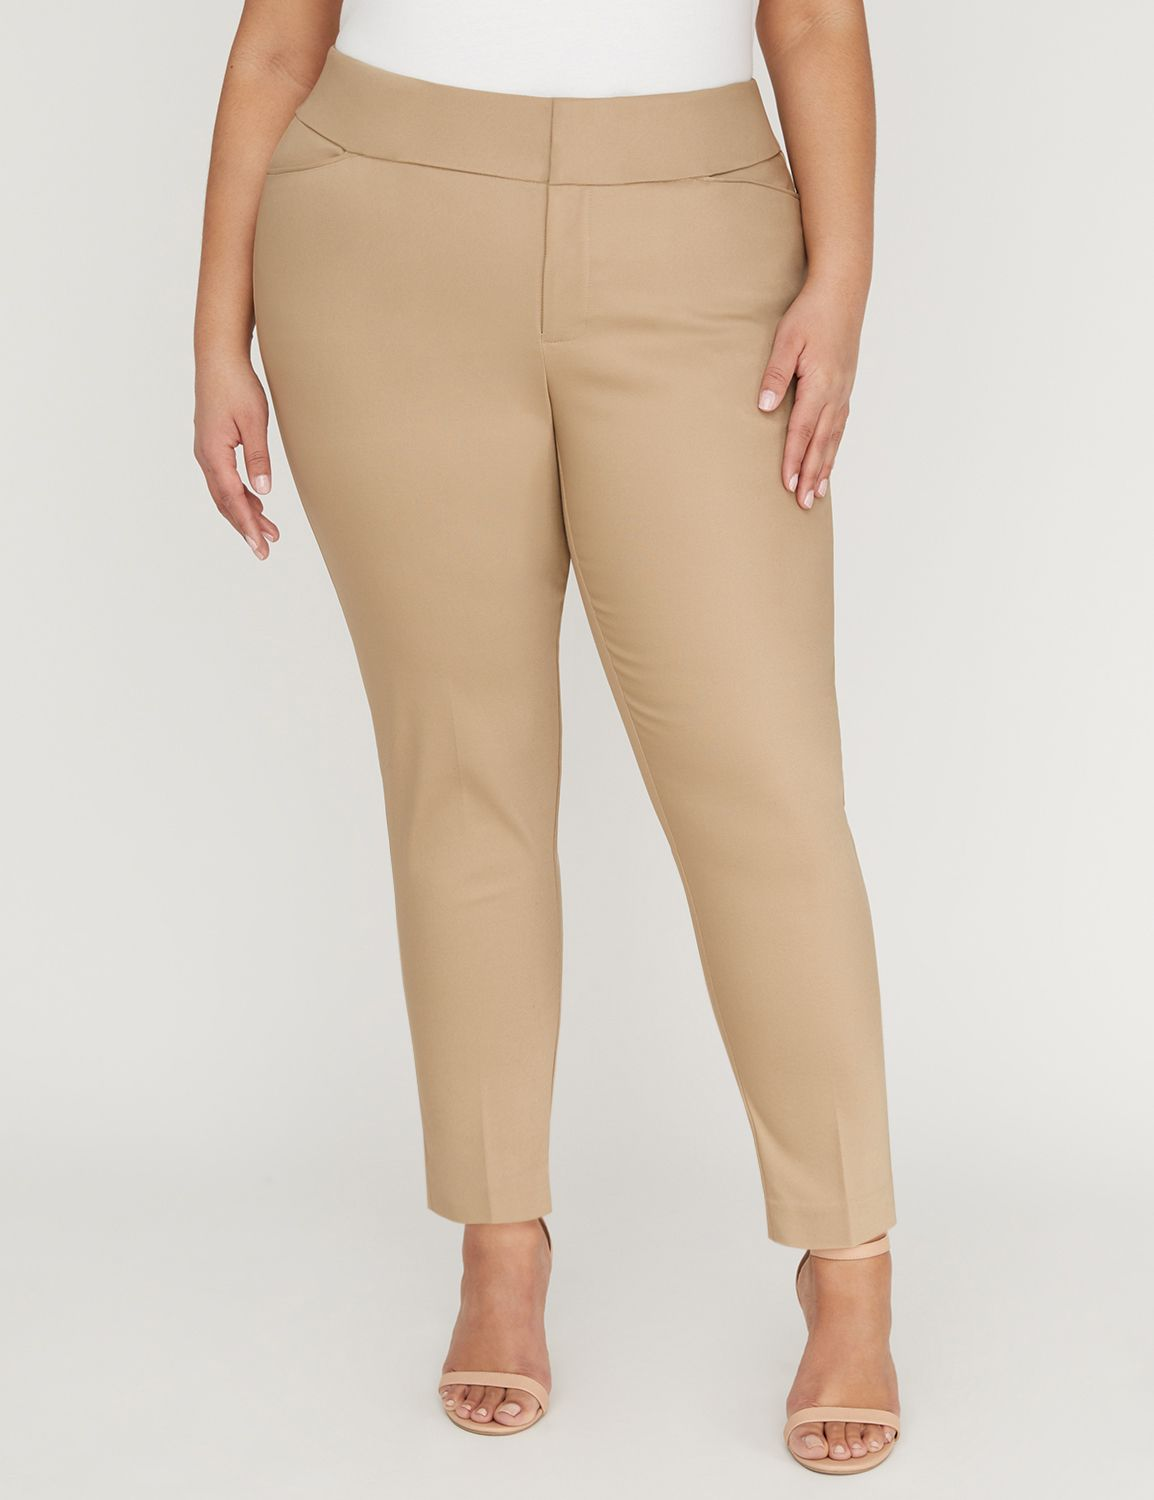 Updated Modern Stretch Ankle Pant 1087775 MODERN STRETCH WIDE WAISTBA MP-300097593